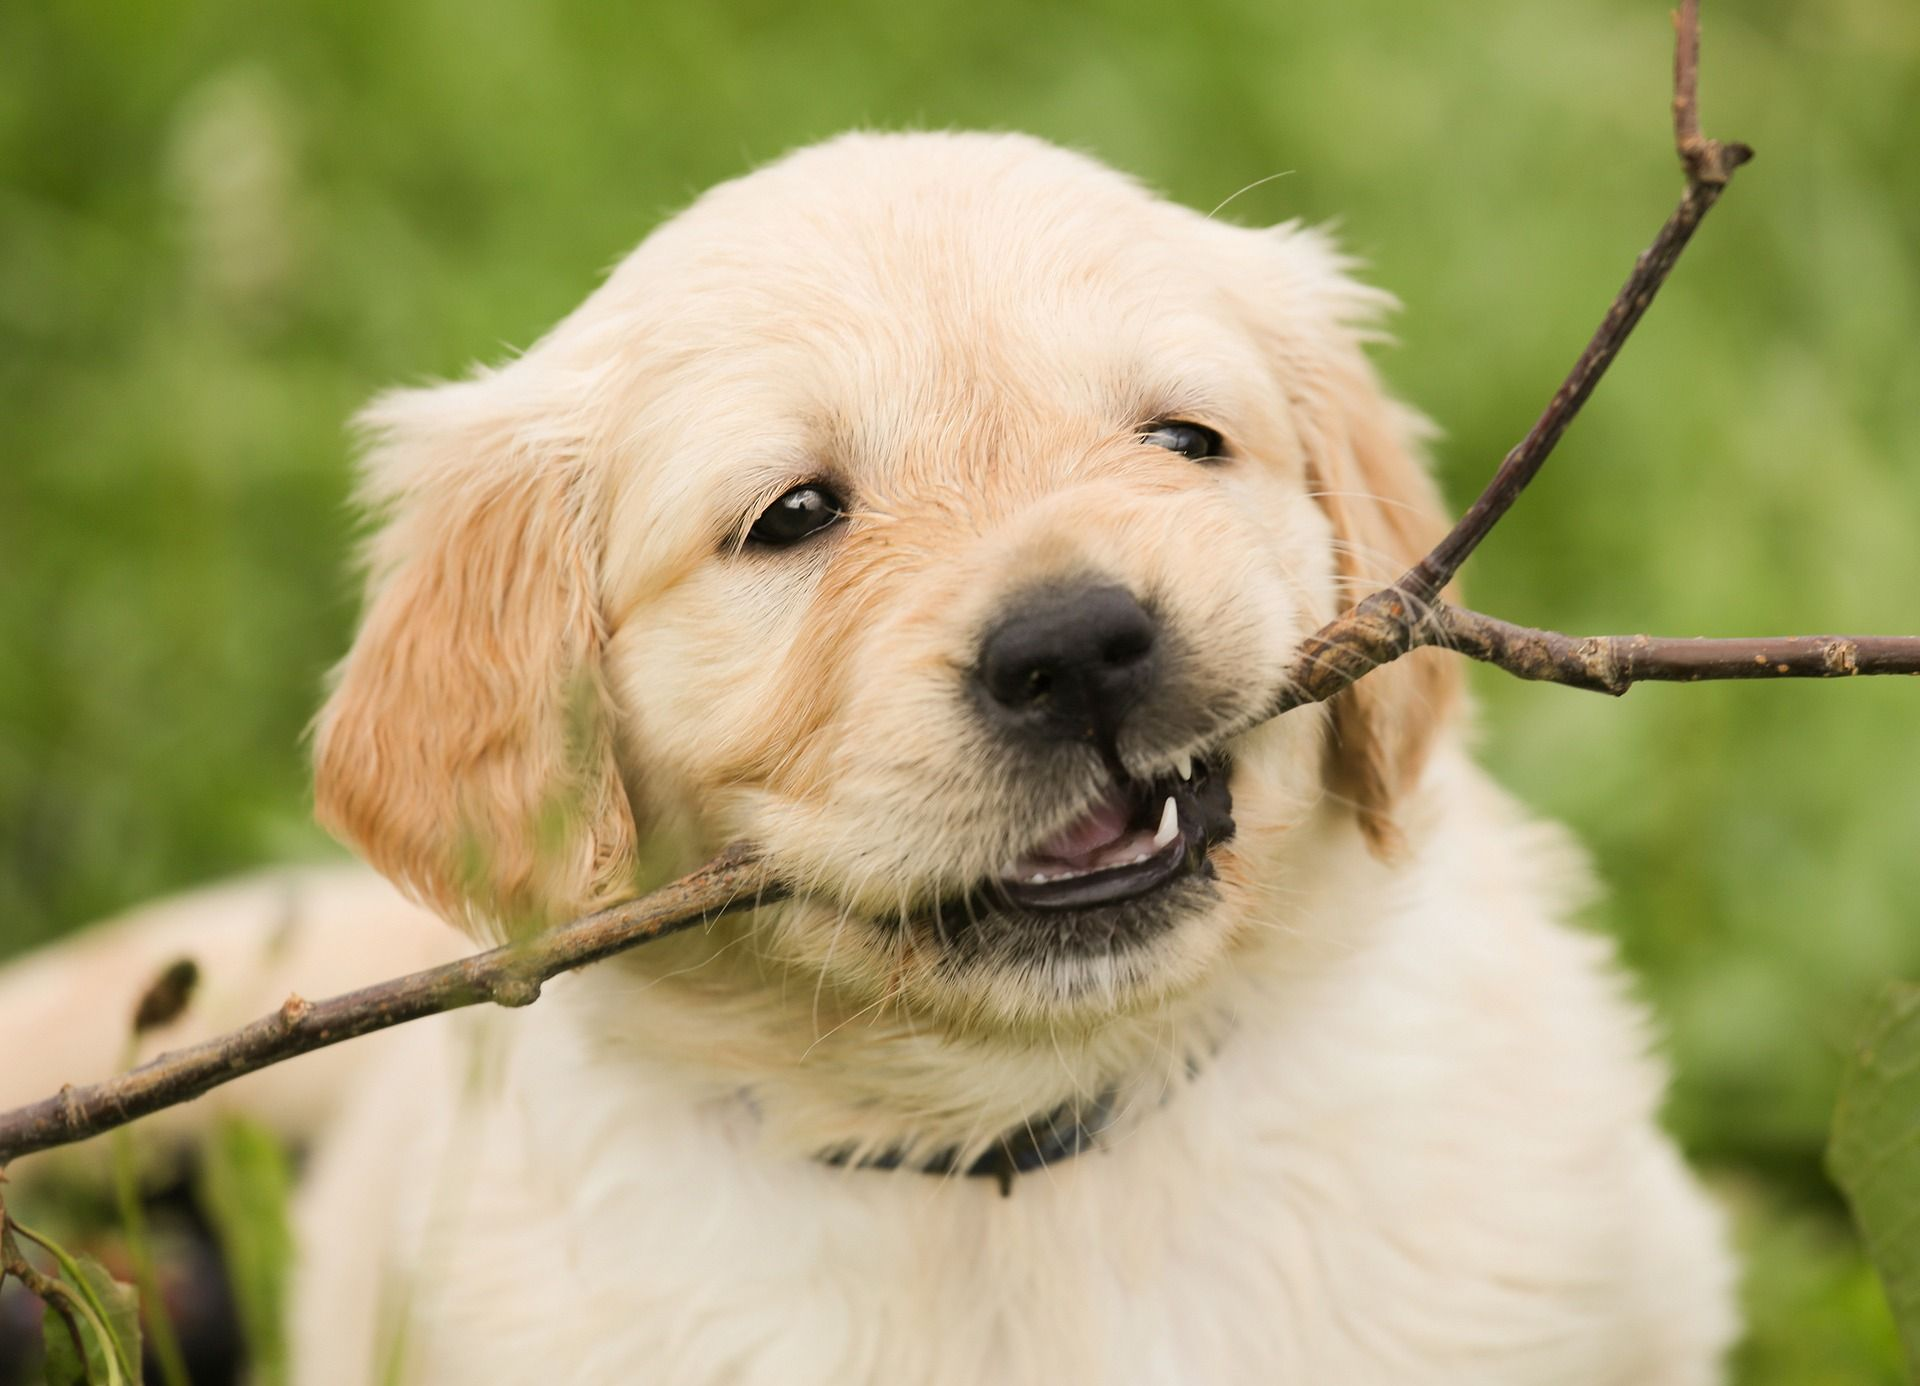 Reasons You Should Never Give A Golden Retriever A Stick